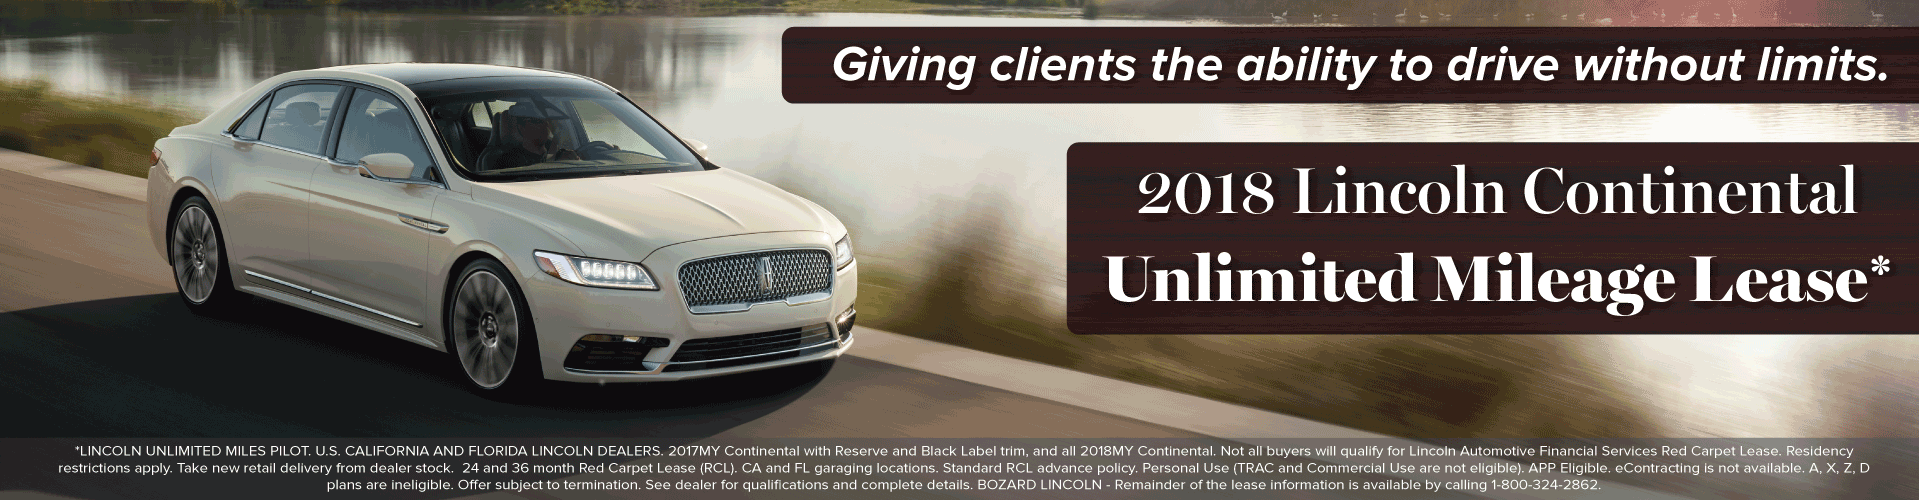 2018 Lincoln Continental Unlimited Mileage Lease